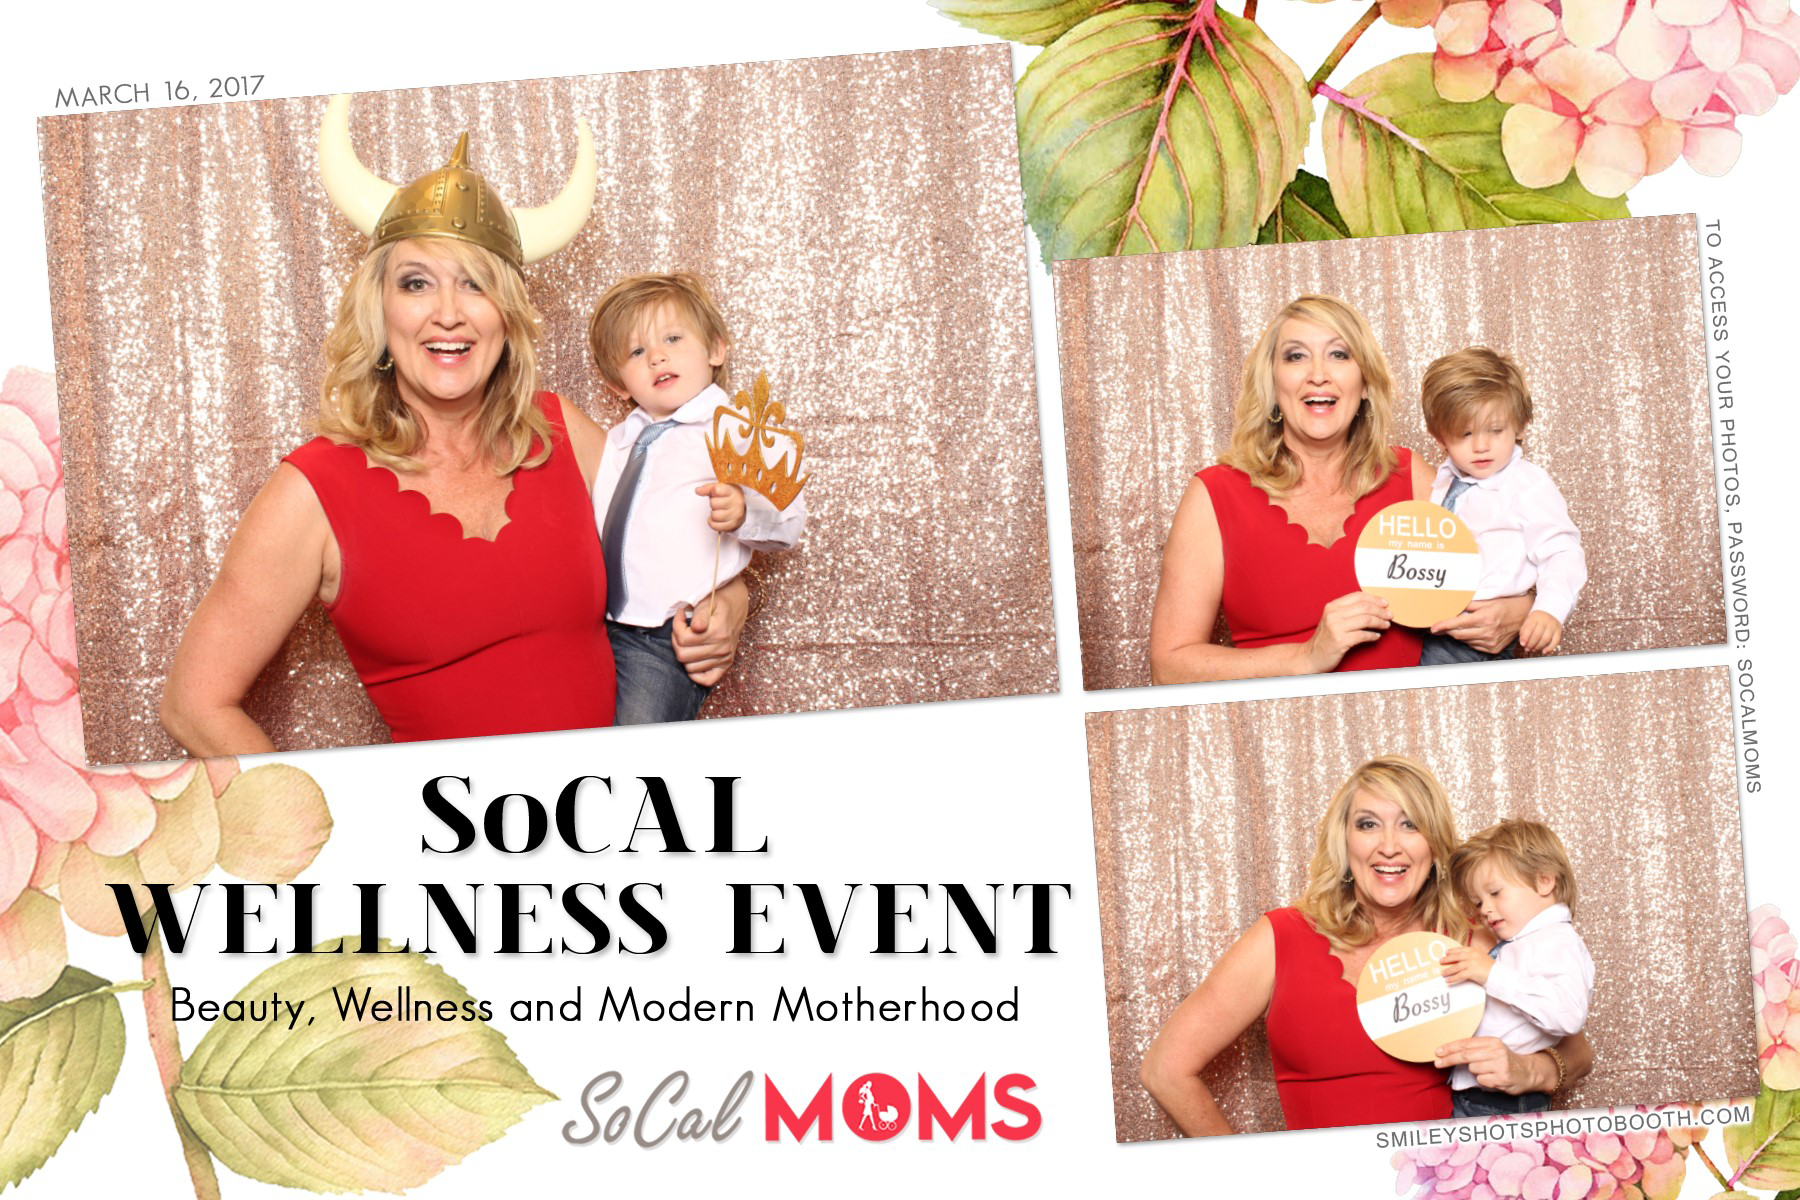 Socal Wellness Event Socal Moms Smiley Shots Photo Booth Photobooth (50).png